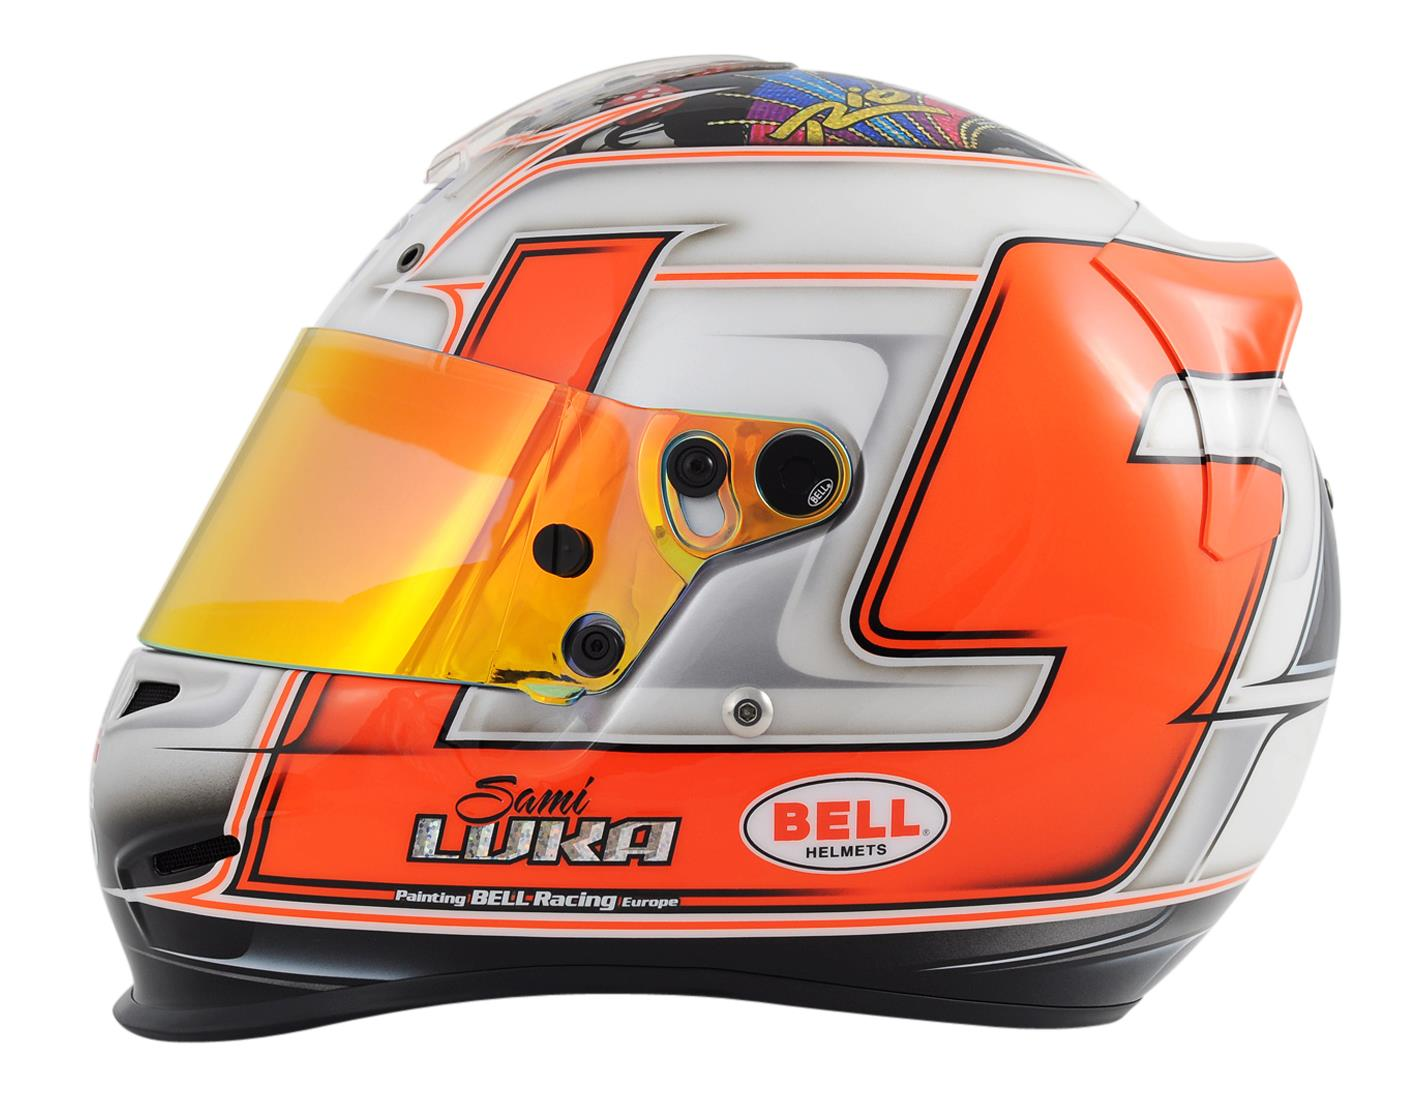 9a501872 Racing Helmets Garage: Bell RS3 Pro S.Luka 2011 by Bell Racing Europe